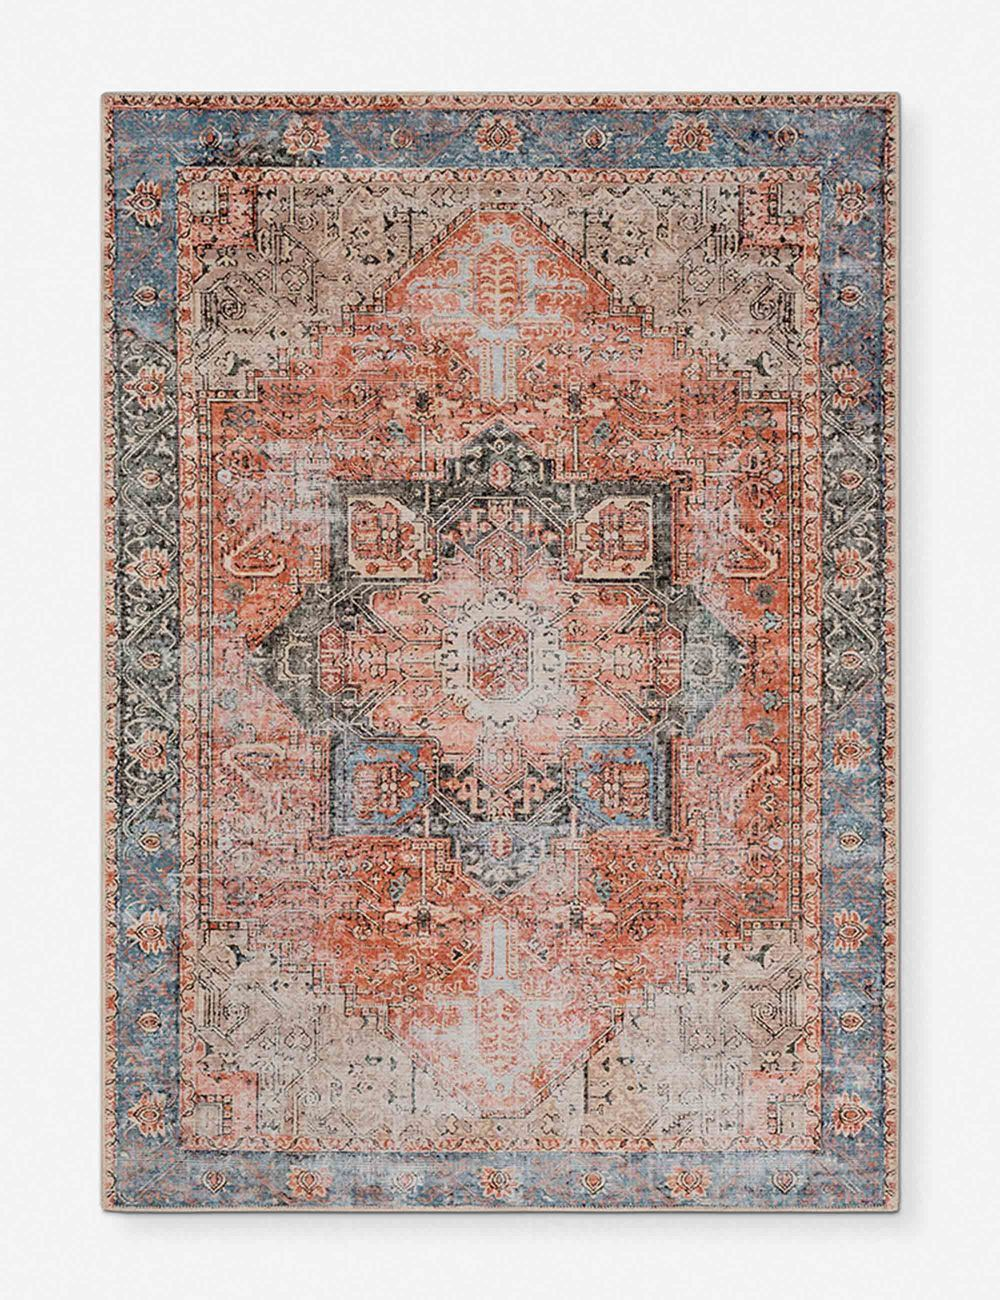 Lulu & Georgia 20 Percent Off Rugs Sale